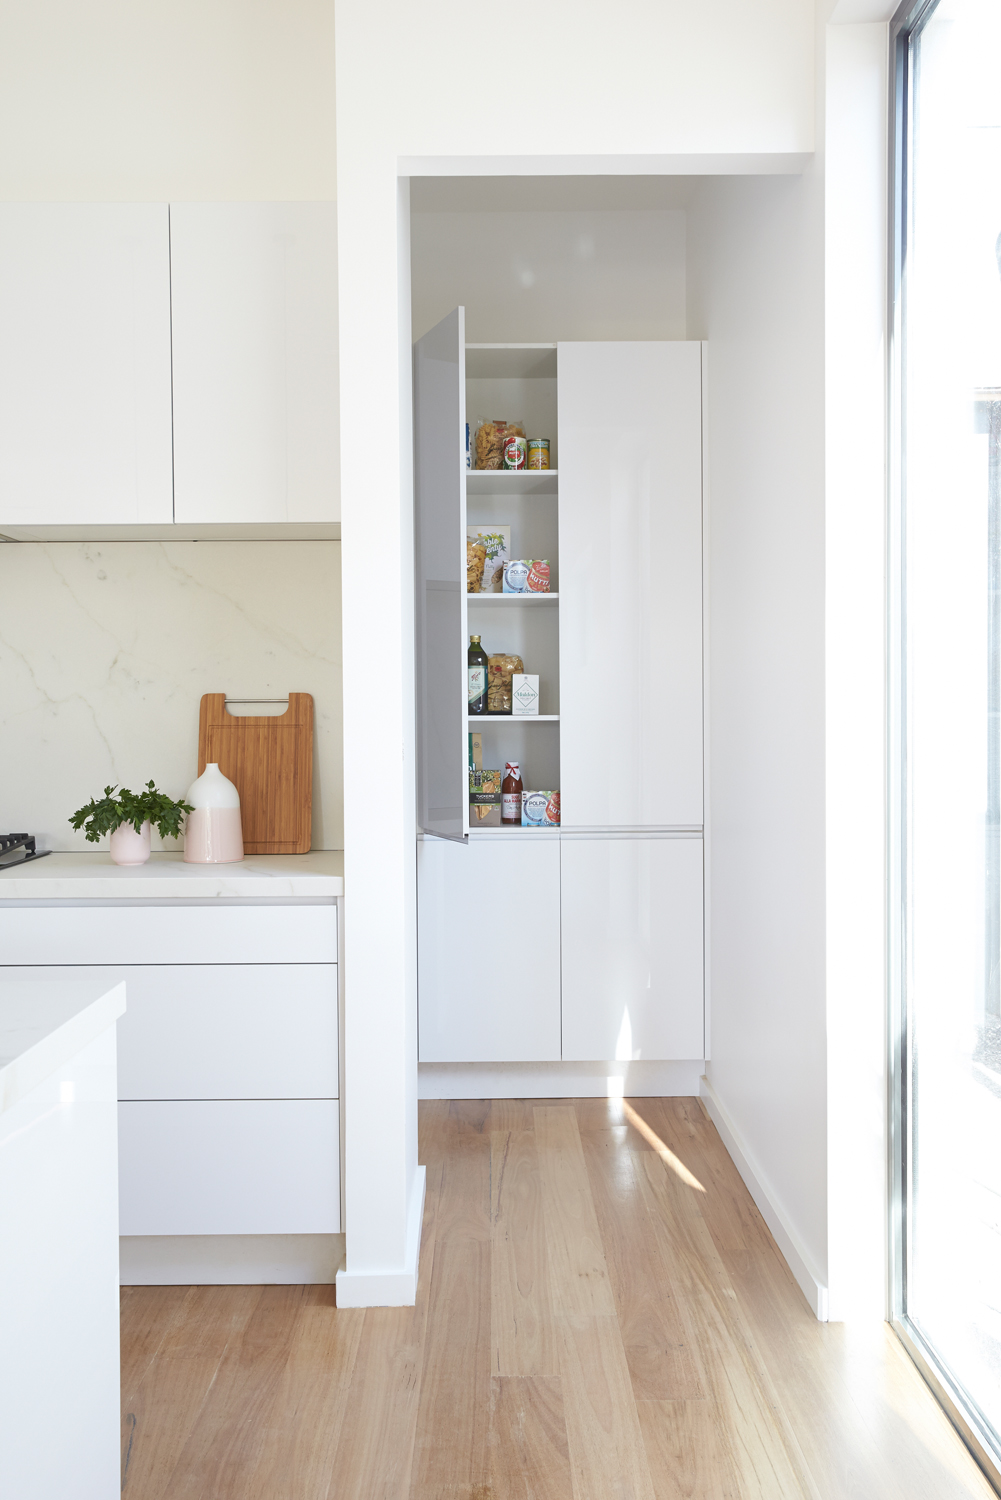 Bec from The Block Skyhigh talks kitchen design with ...